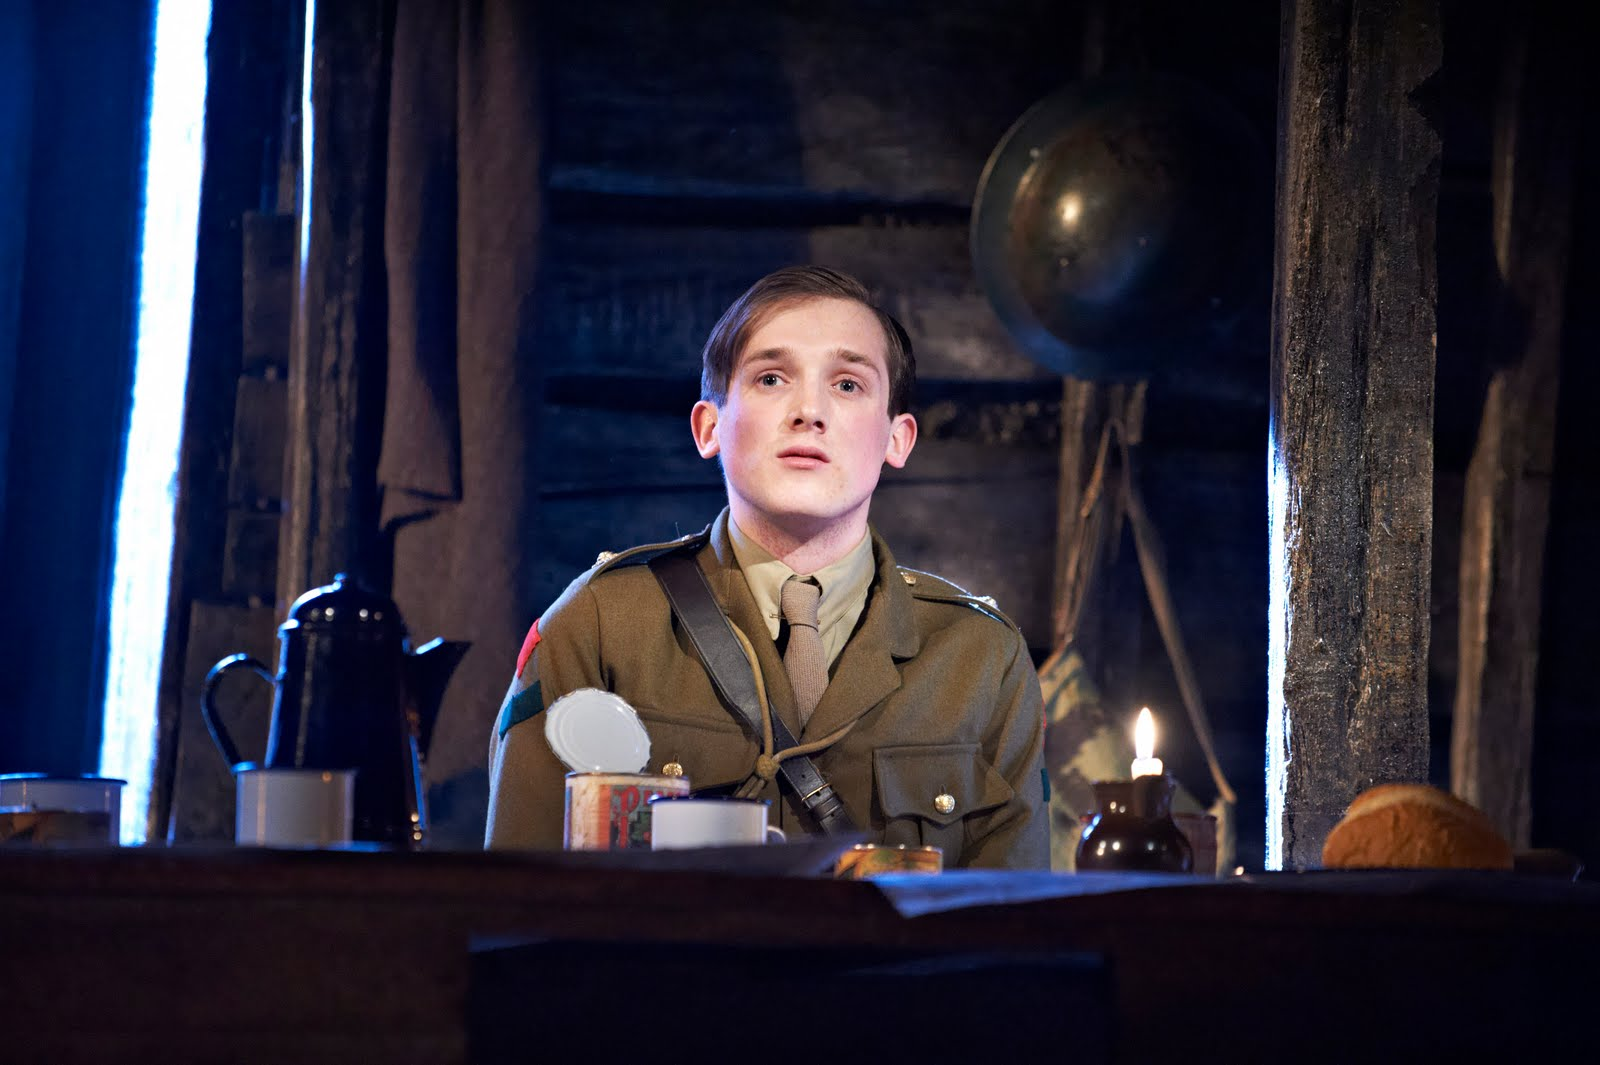 journeys end stanhope and raleigh Few stage staples from 90 years ago would easily translate to the screen today, yet rc sherriff's once near-ubiquitous journey's end proves potent as ever in this sturdy new adaptation from director saul dibb and writer-producer simon reade.